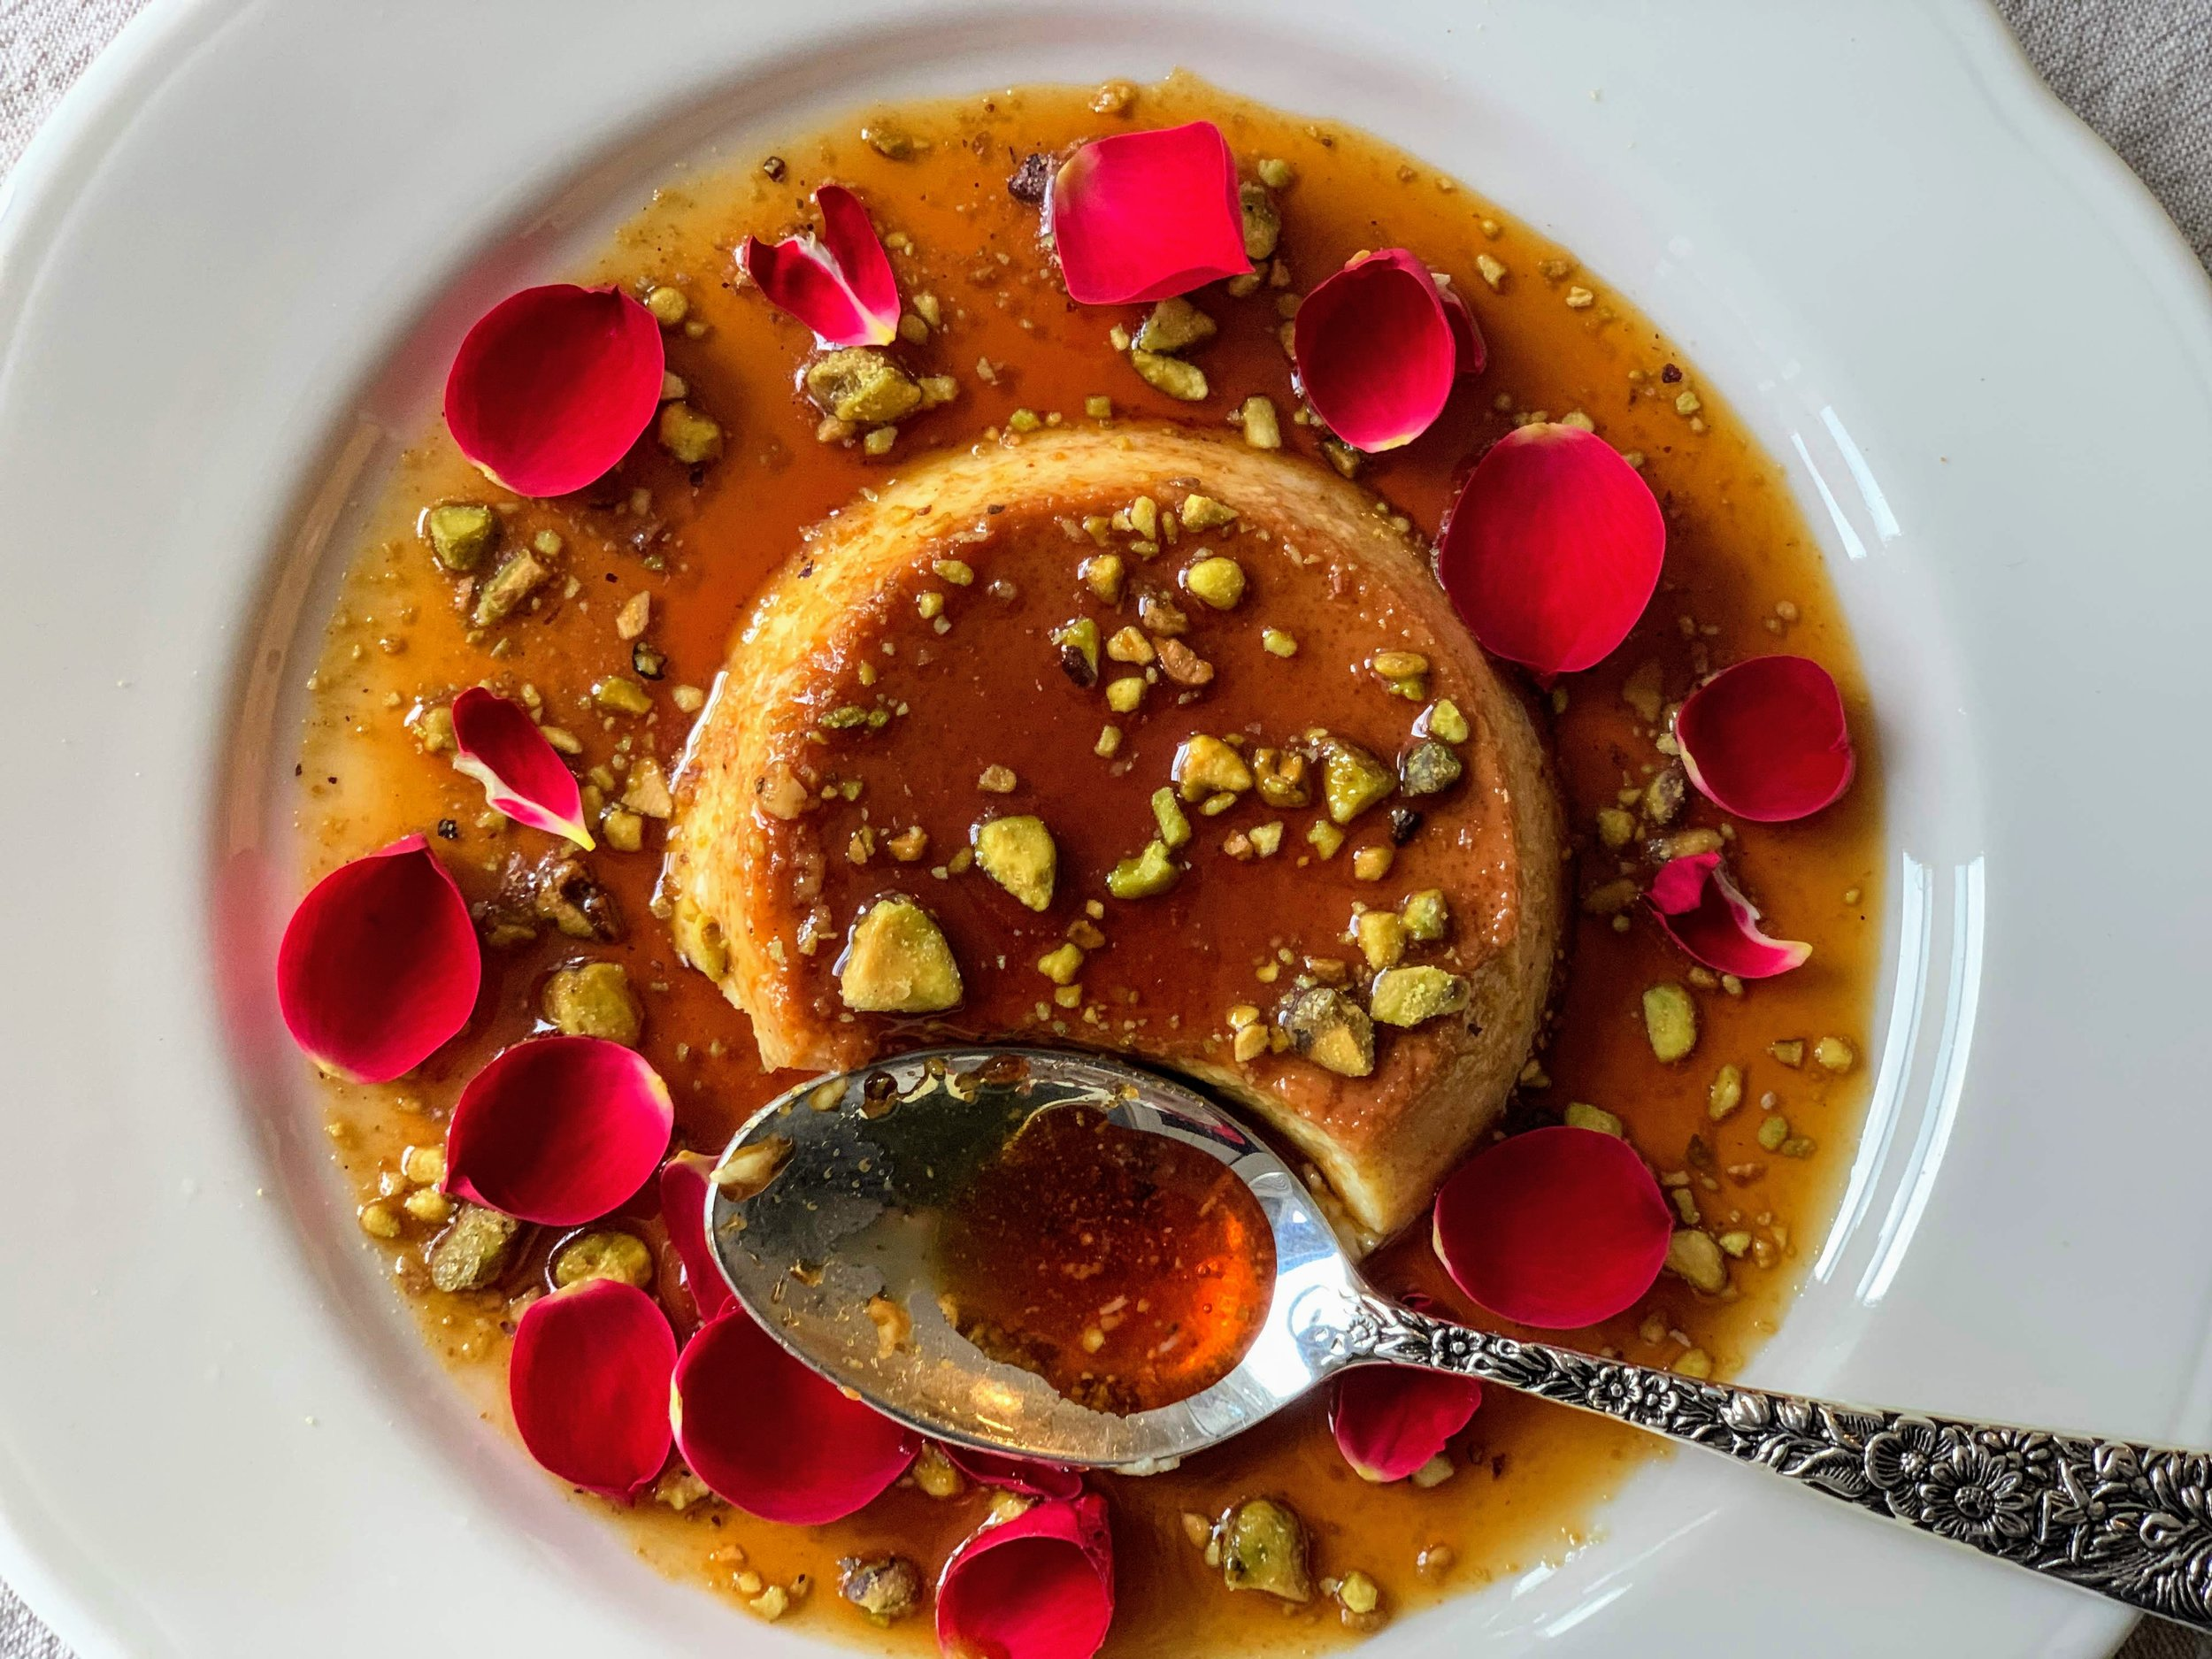 Rose and pistachio flan